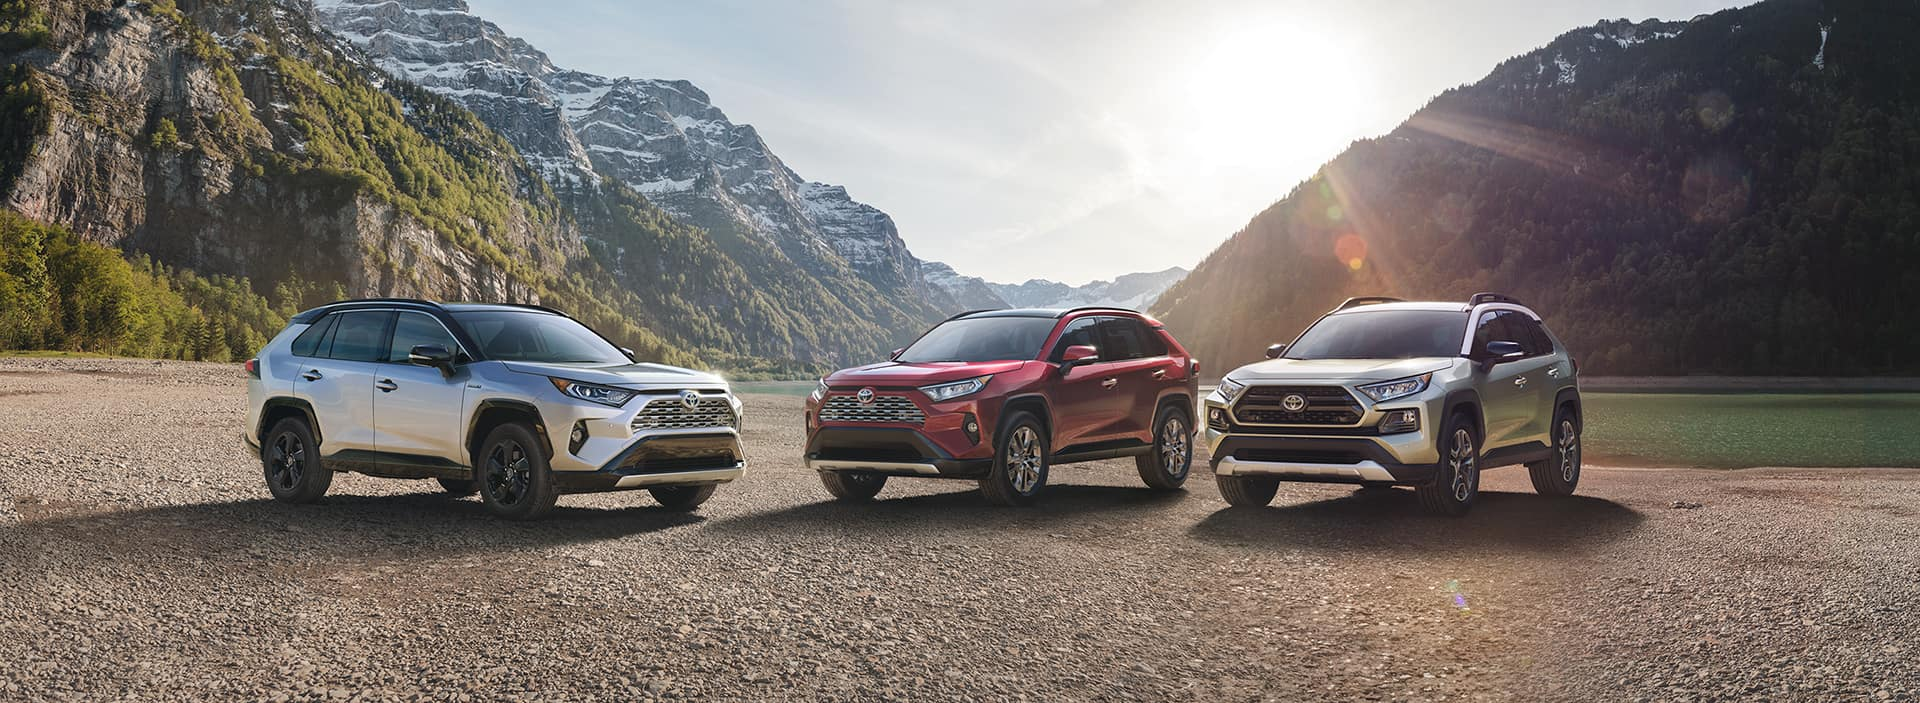 Three All-New 2019 RAV4 Models Lined up by Mountains